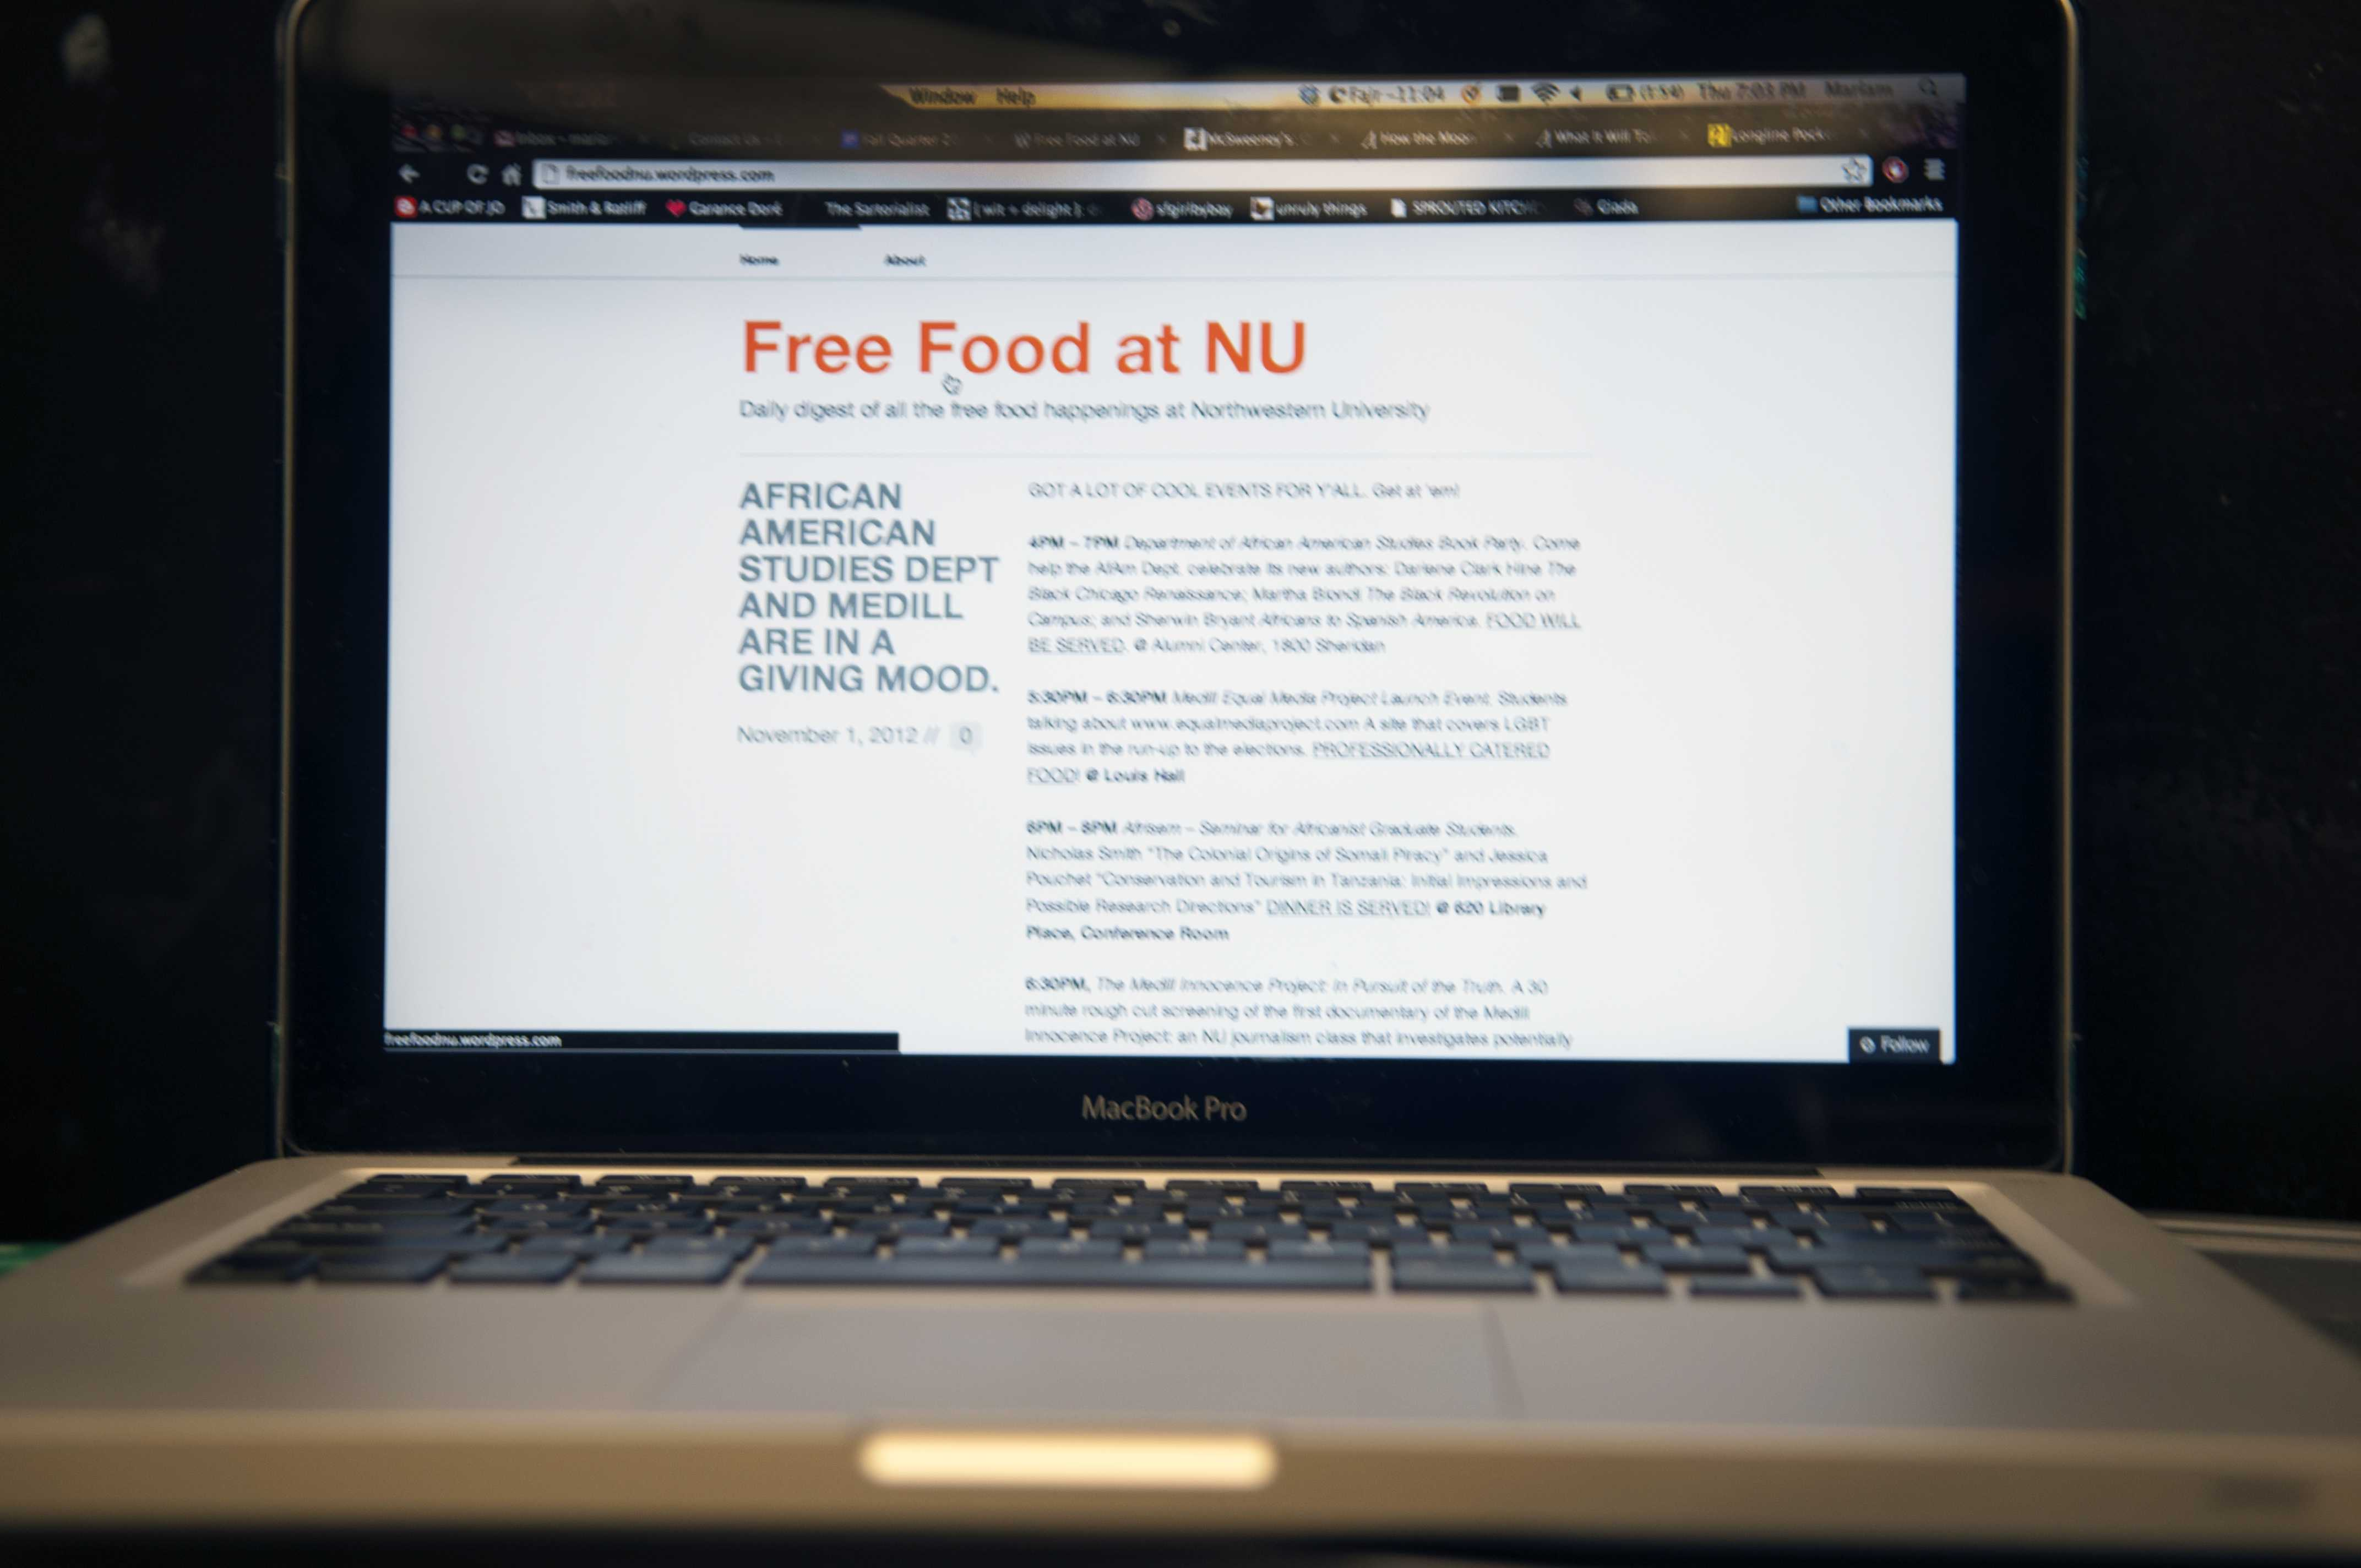 Weinberg senior Alice Jeon started the Twitter account and blog FreeFoodNU on Monday night. The account garnered student attention with more than 180 followers.